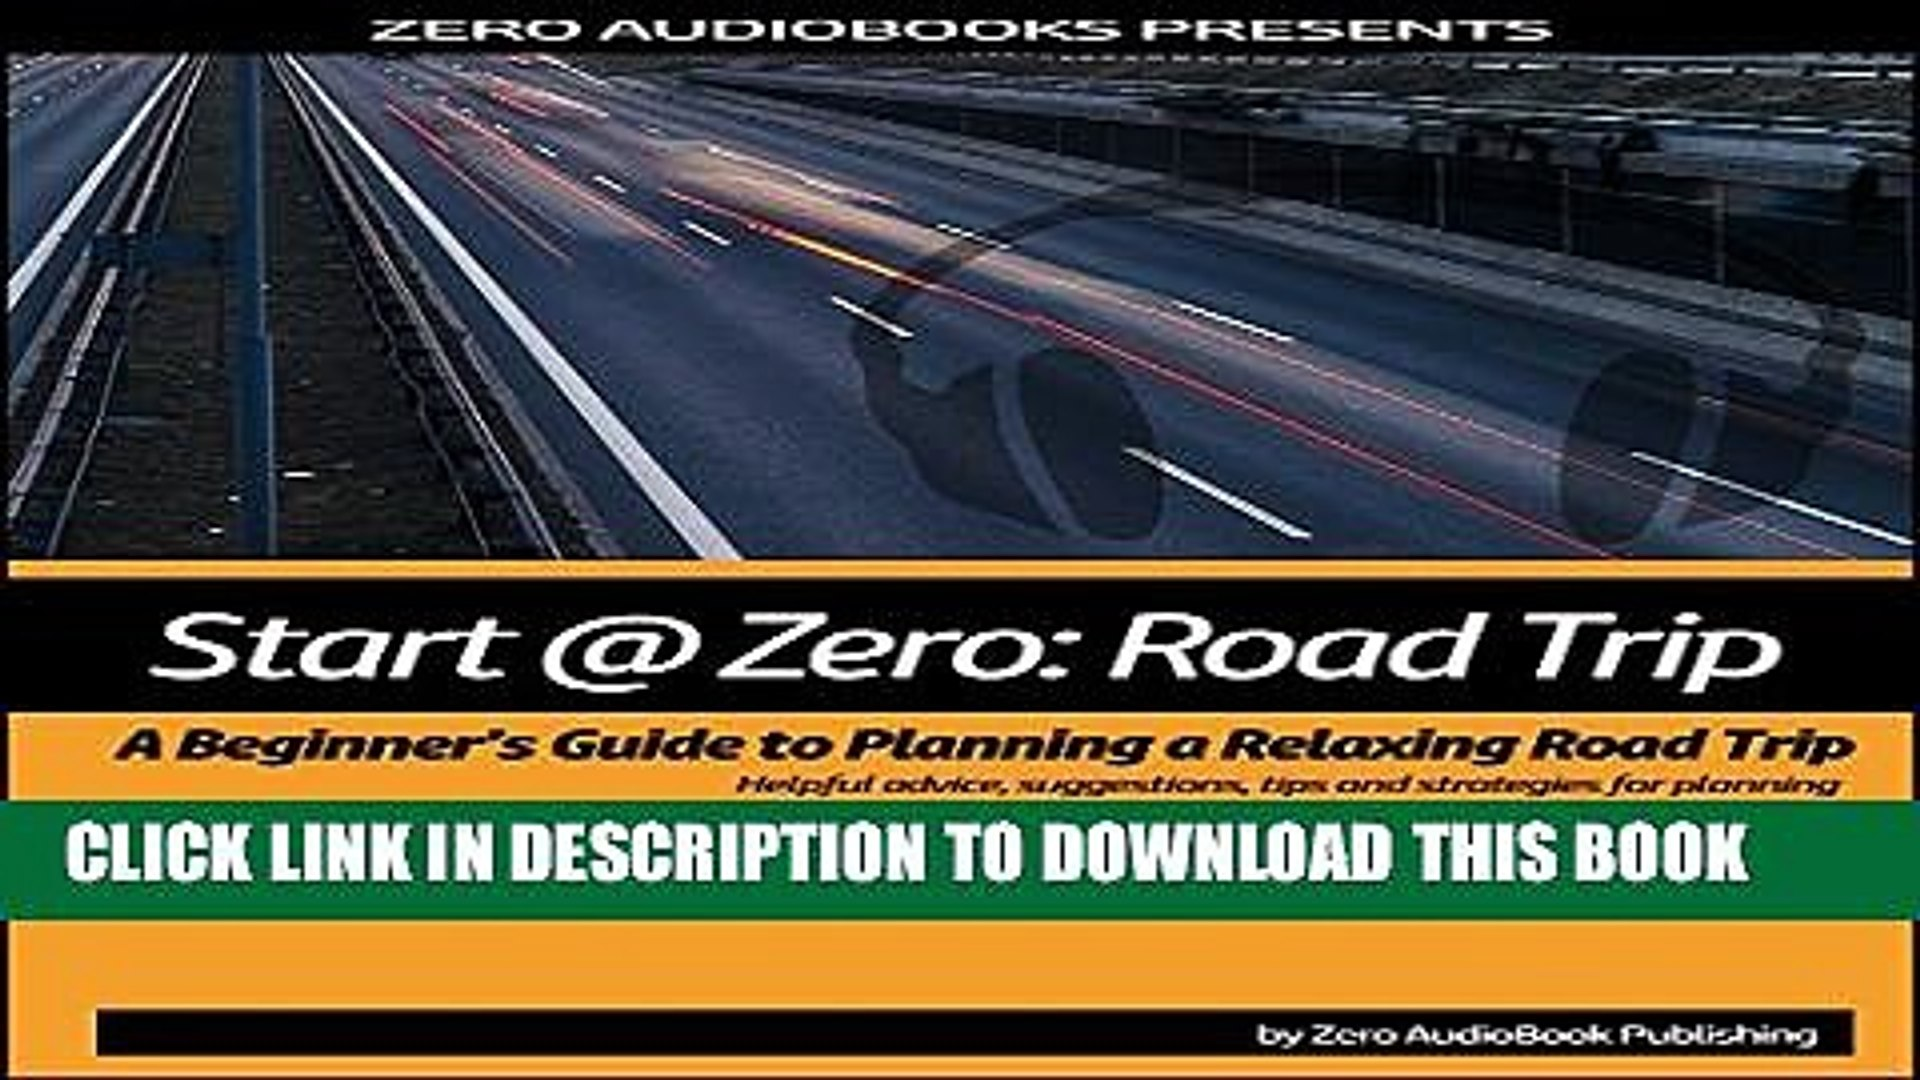 [New] Start at Zero: Road Trip: A Beginner s Guide to Planning a Relaxing Road Trip Exclusive Full